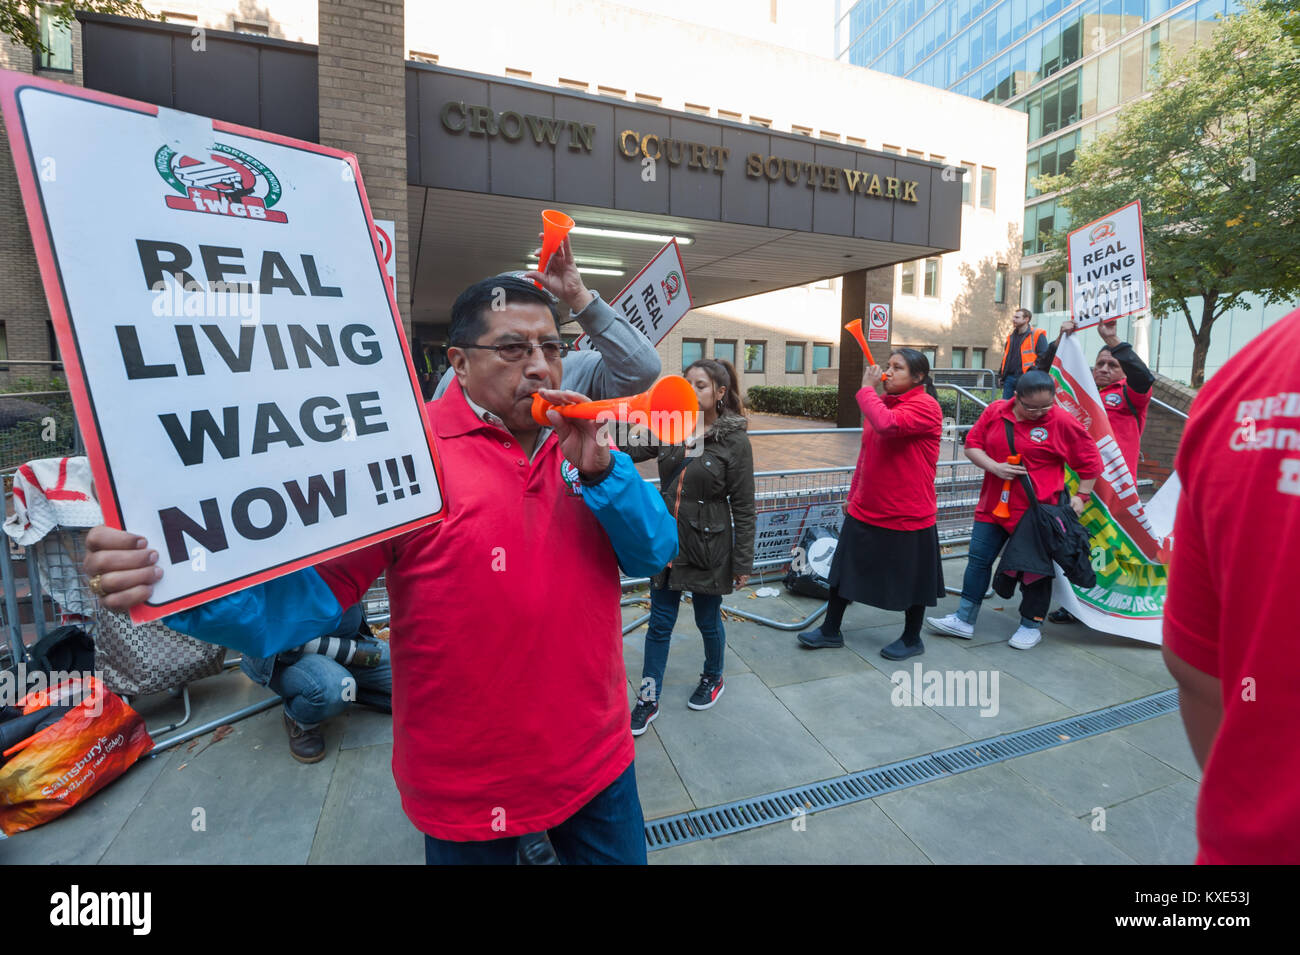 Protesters blow horns at a noisy IWGB protest demanding the London living wage for cleaners at Southwark Crown Court. - Stock Image